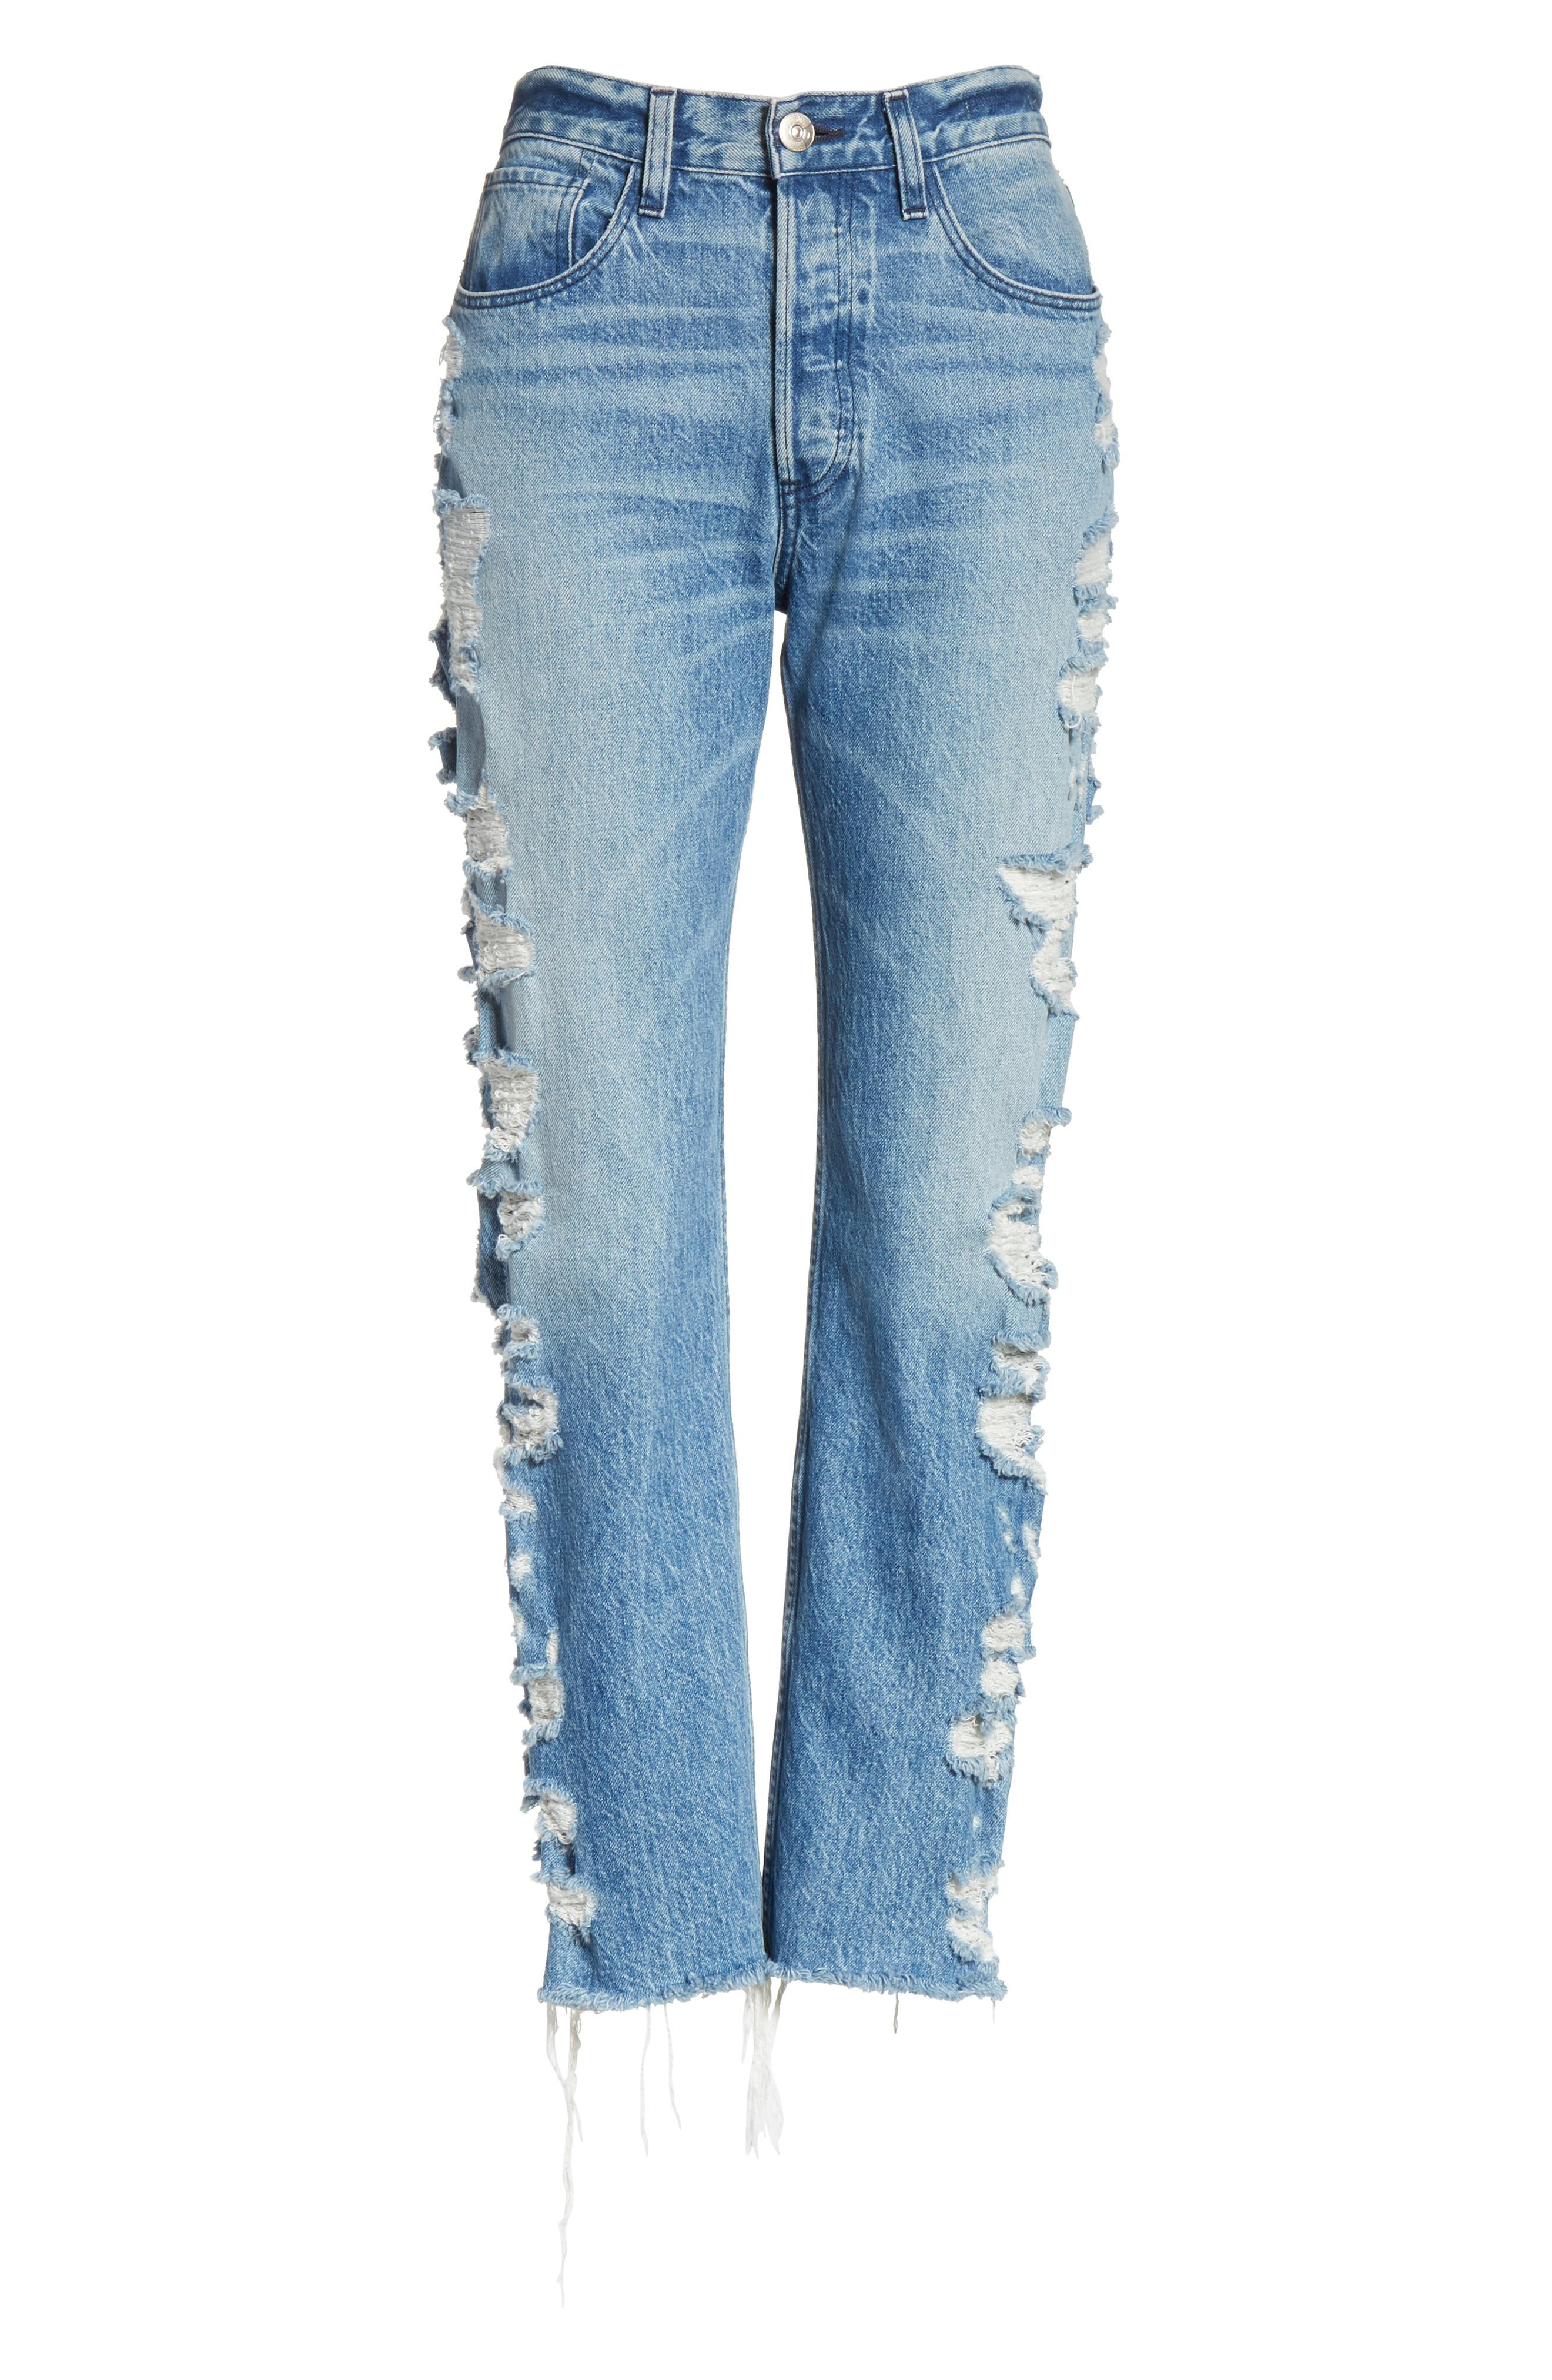 W3 Higher Ground Bleached Ankle Slim Fit Jeans,                             Alternate thumbnail 25, color,